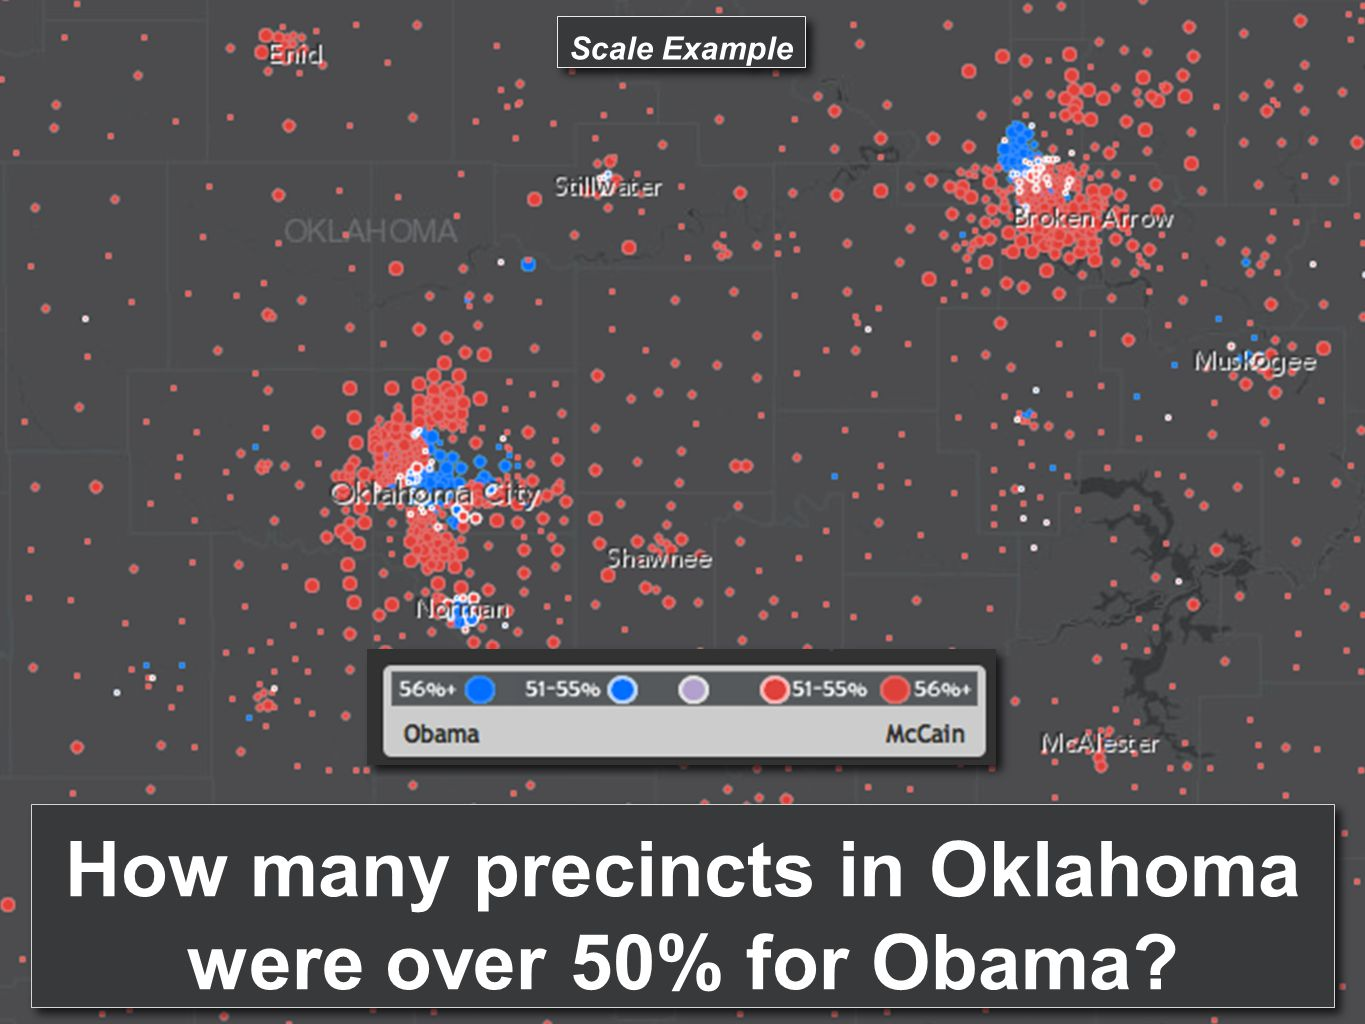 How many precincts in Oklahoma were over 50% for Obama Scale Example